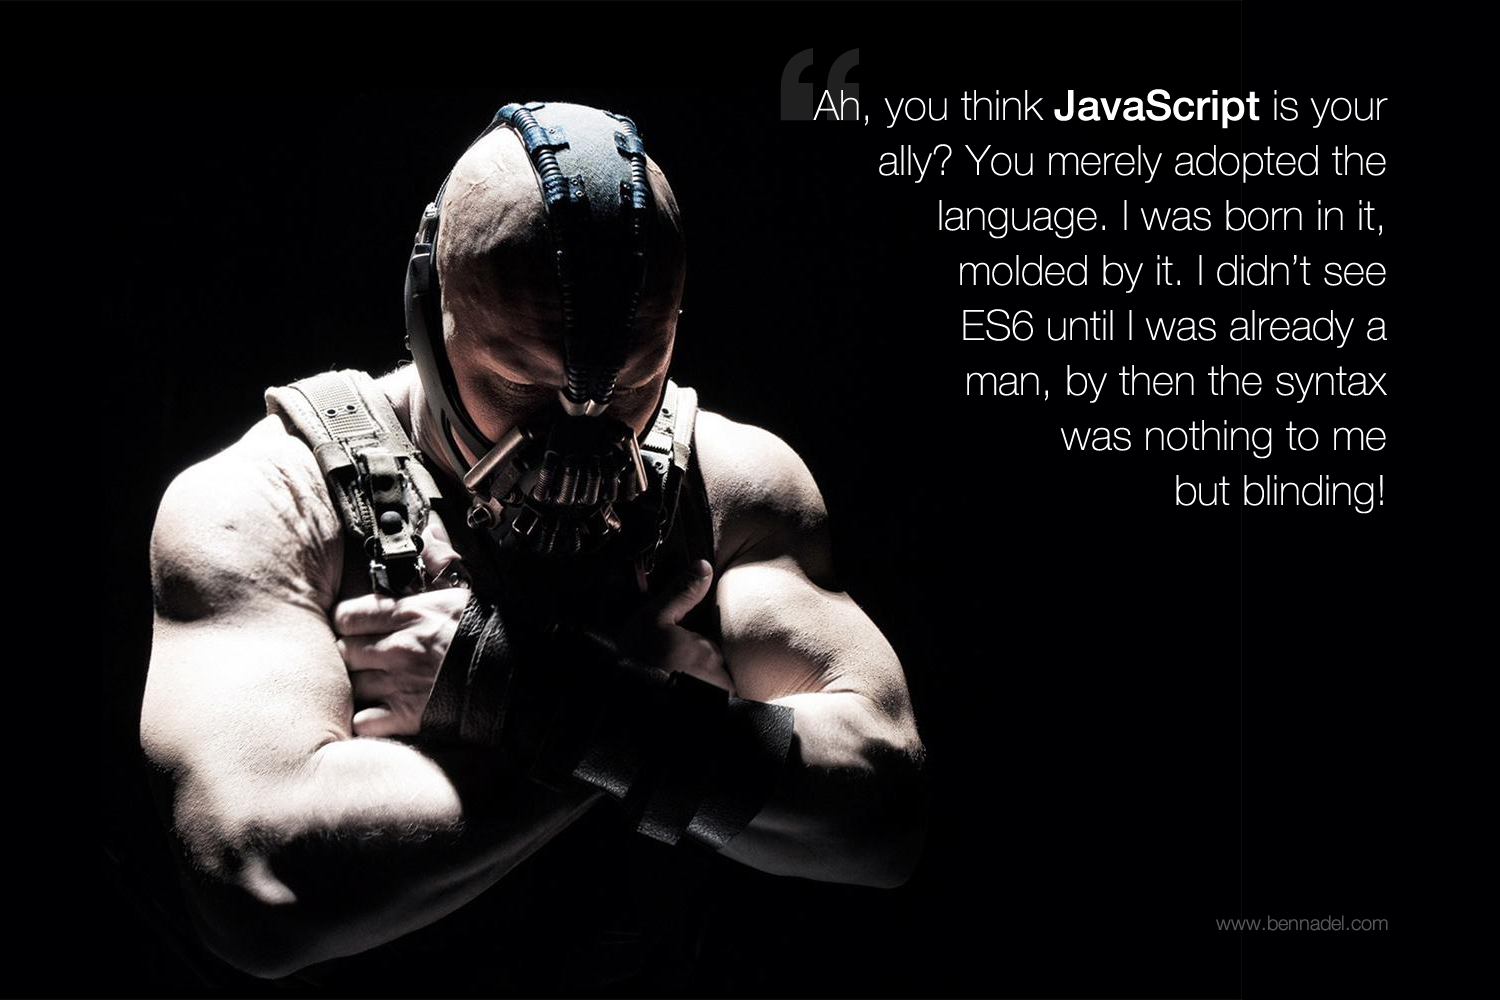 Bane on JavaScript - Ahh, you think JavaScript is your ally. You merely adopted the language.